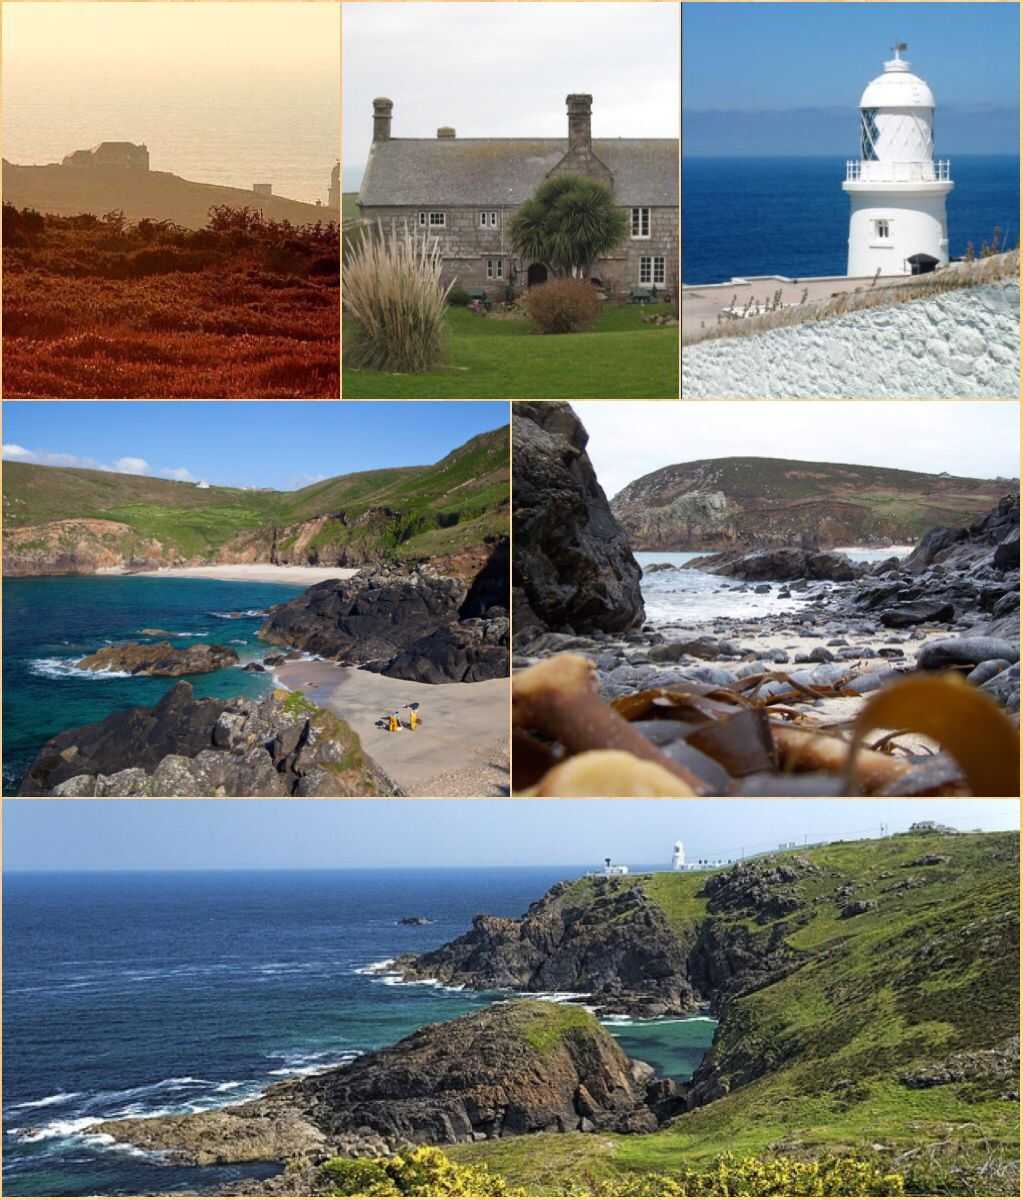 Pendeen (from Cornish: Penn Din, otherwise known as Boskaswal Wartha) is a village on the Penwith peninsula in Cornwall. It is 3 miles (4.8 km) north-northeast of St Just and 7 miles (11.3 km) west of Penzance. It lies along the B3306 road which connects St Ives to Land's End and the A30 road. The village has a community centre, a shop, a post office, a primary school, and a few small businesses. Community activities include an art club, a gardening club, silver marching band and a football…